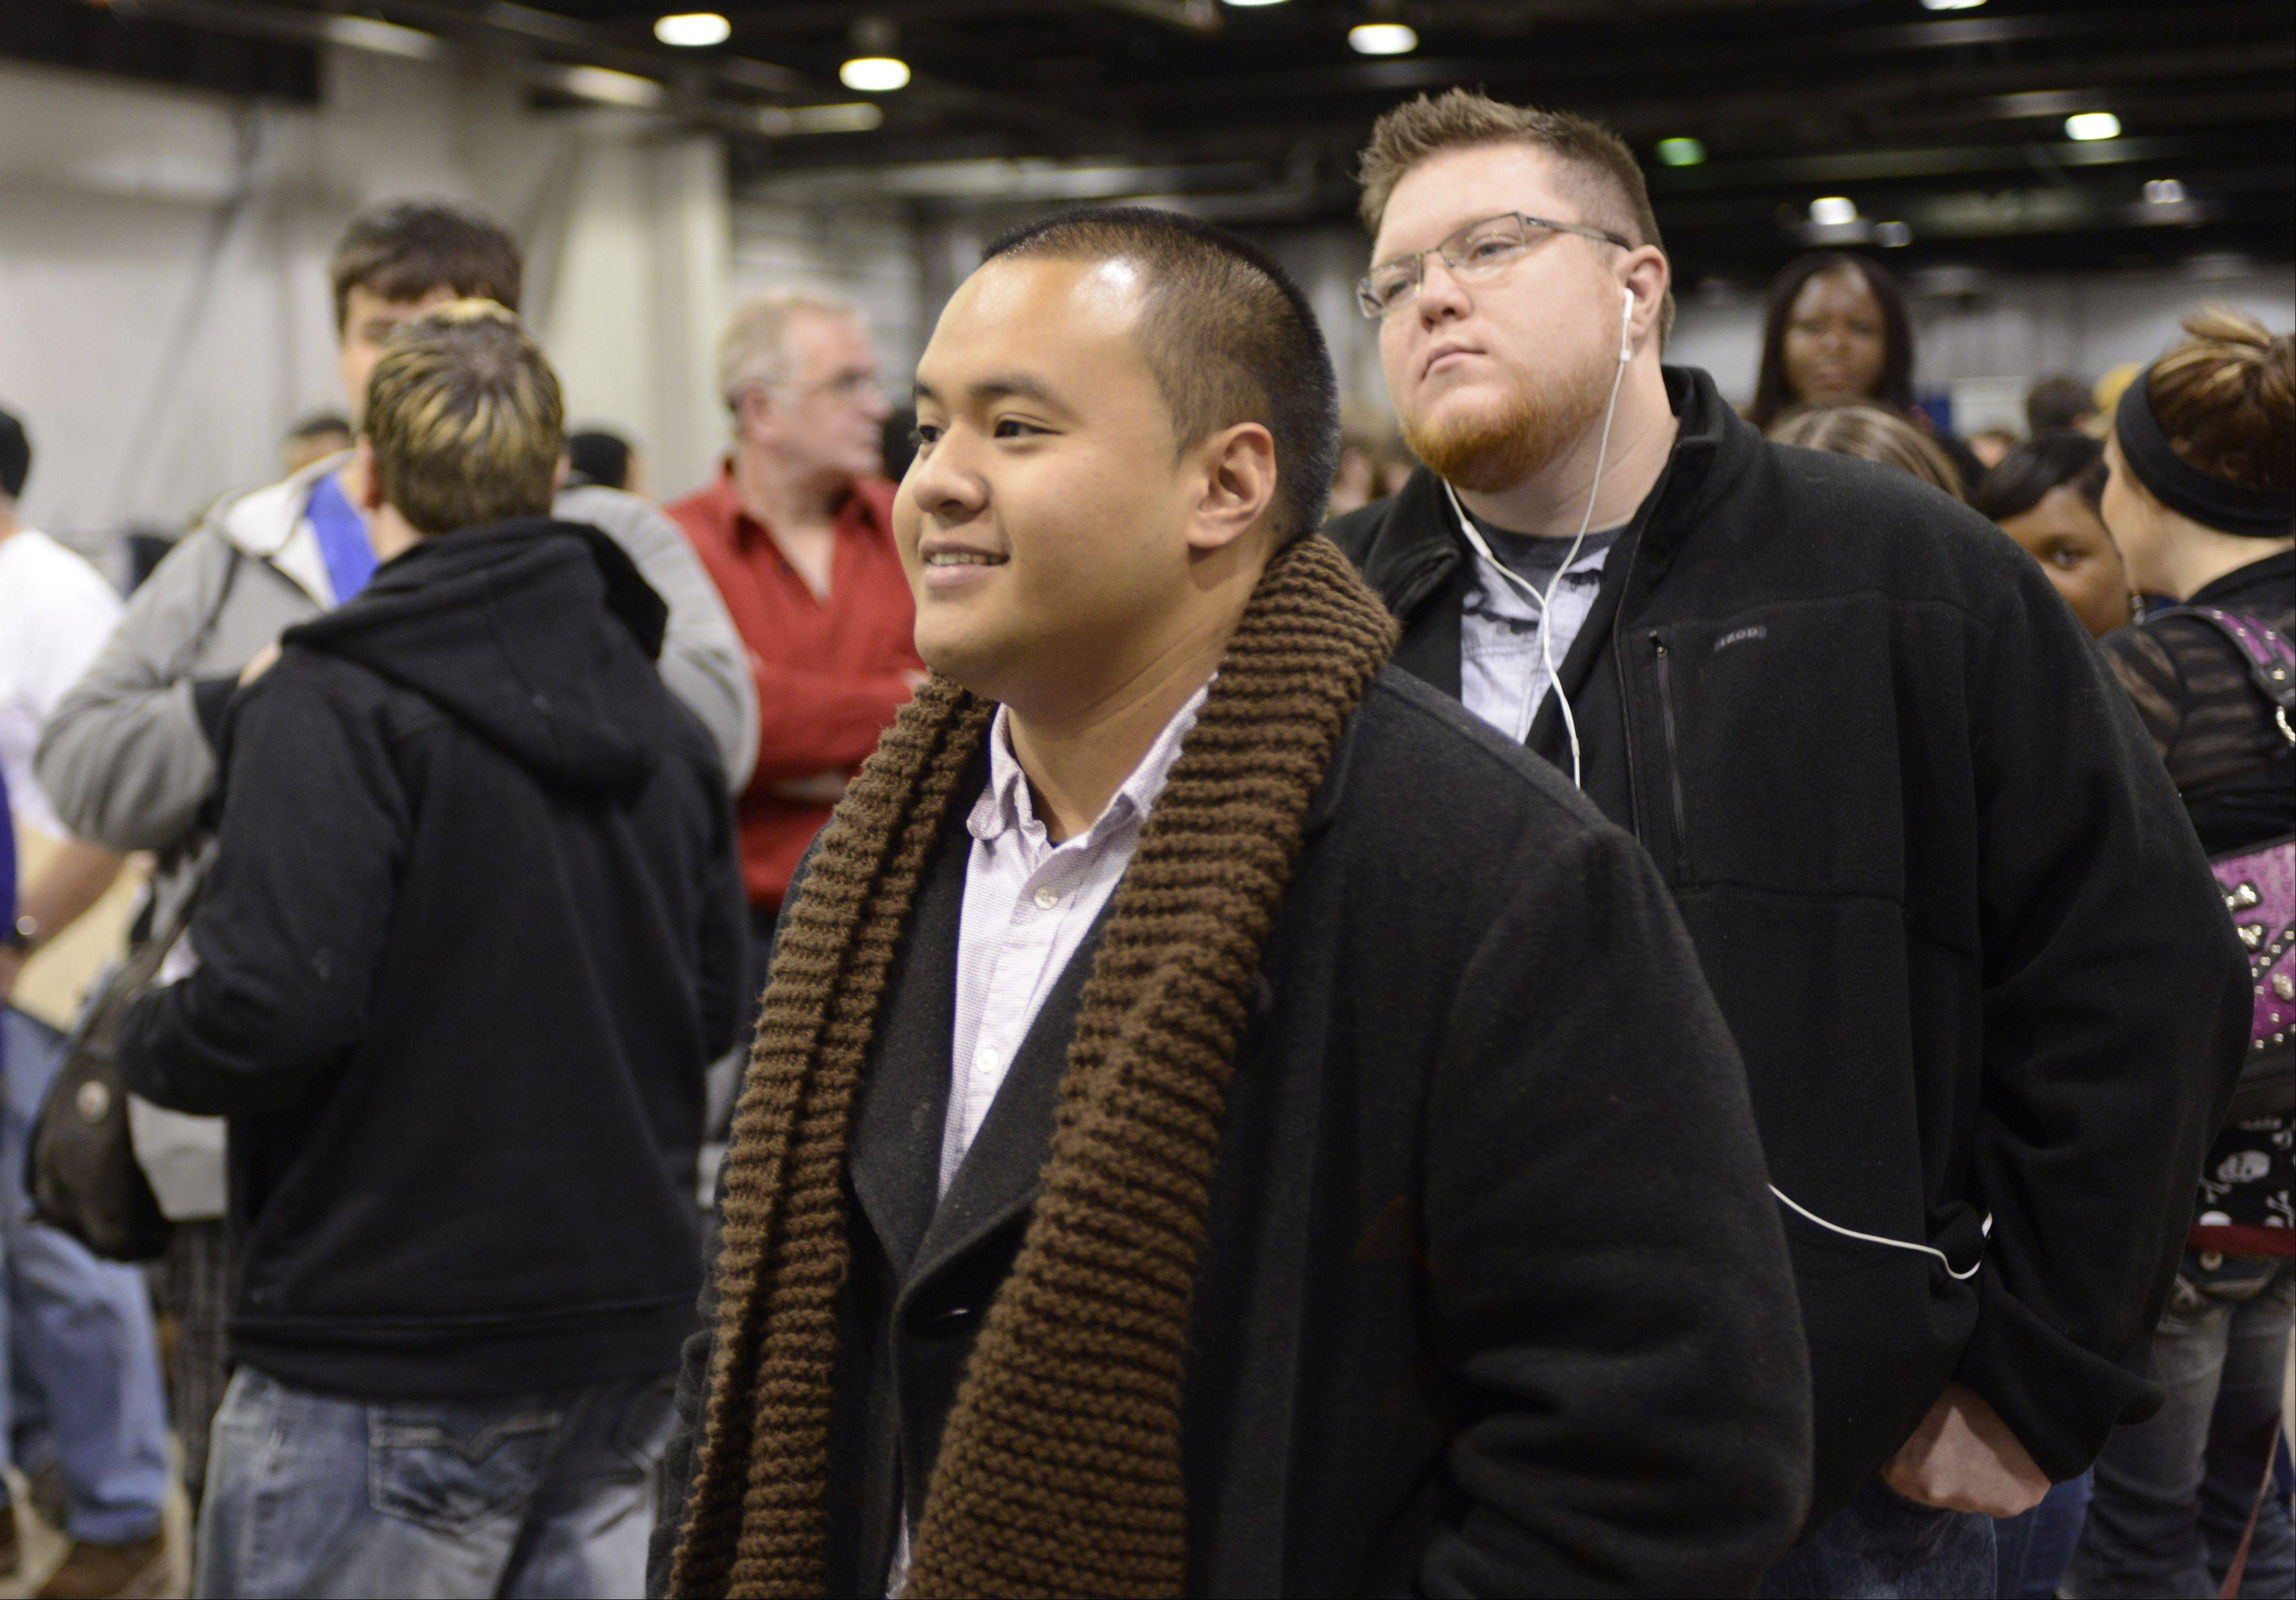 "JOE LEWNARD/jlewnard@dailyherald.comRaul Polidario of Mundelein waits to audition Sunday for the TV show ""The Voice"" at the Stephens Convention Center in Rosemont. Hundreds of aspiring singers from across the suburbs traveled to Rosemont over the weekend to try out for the show."